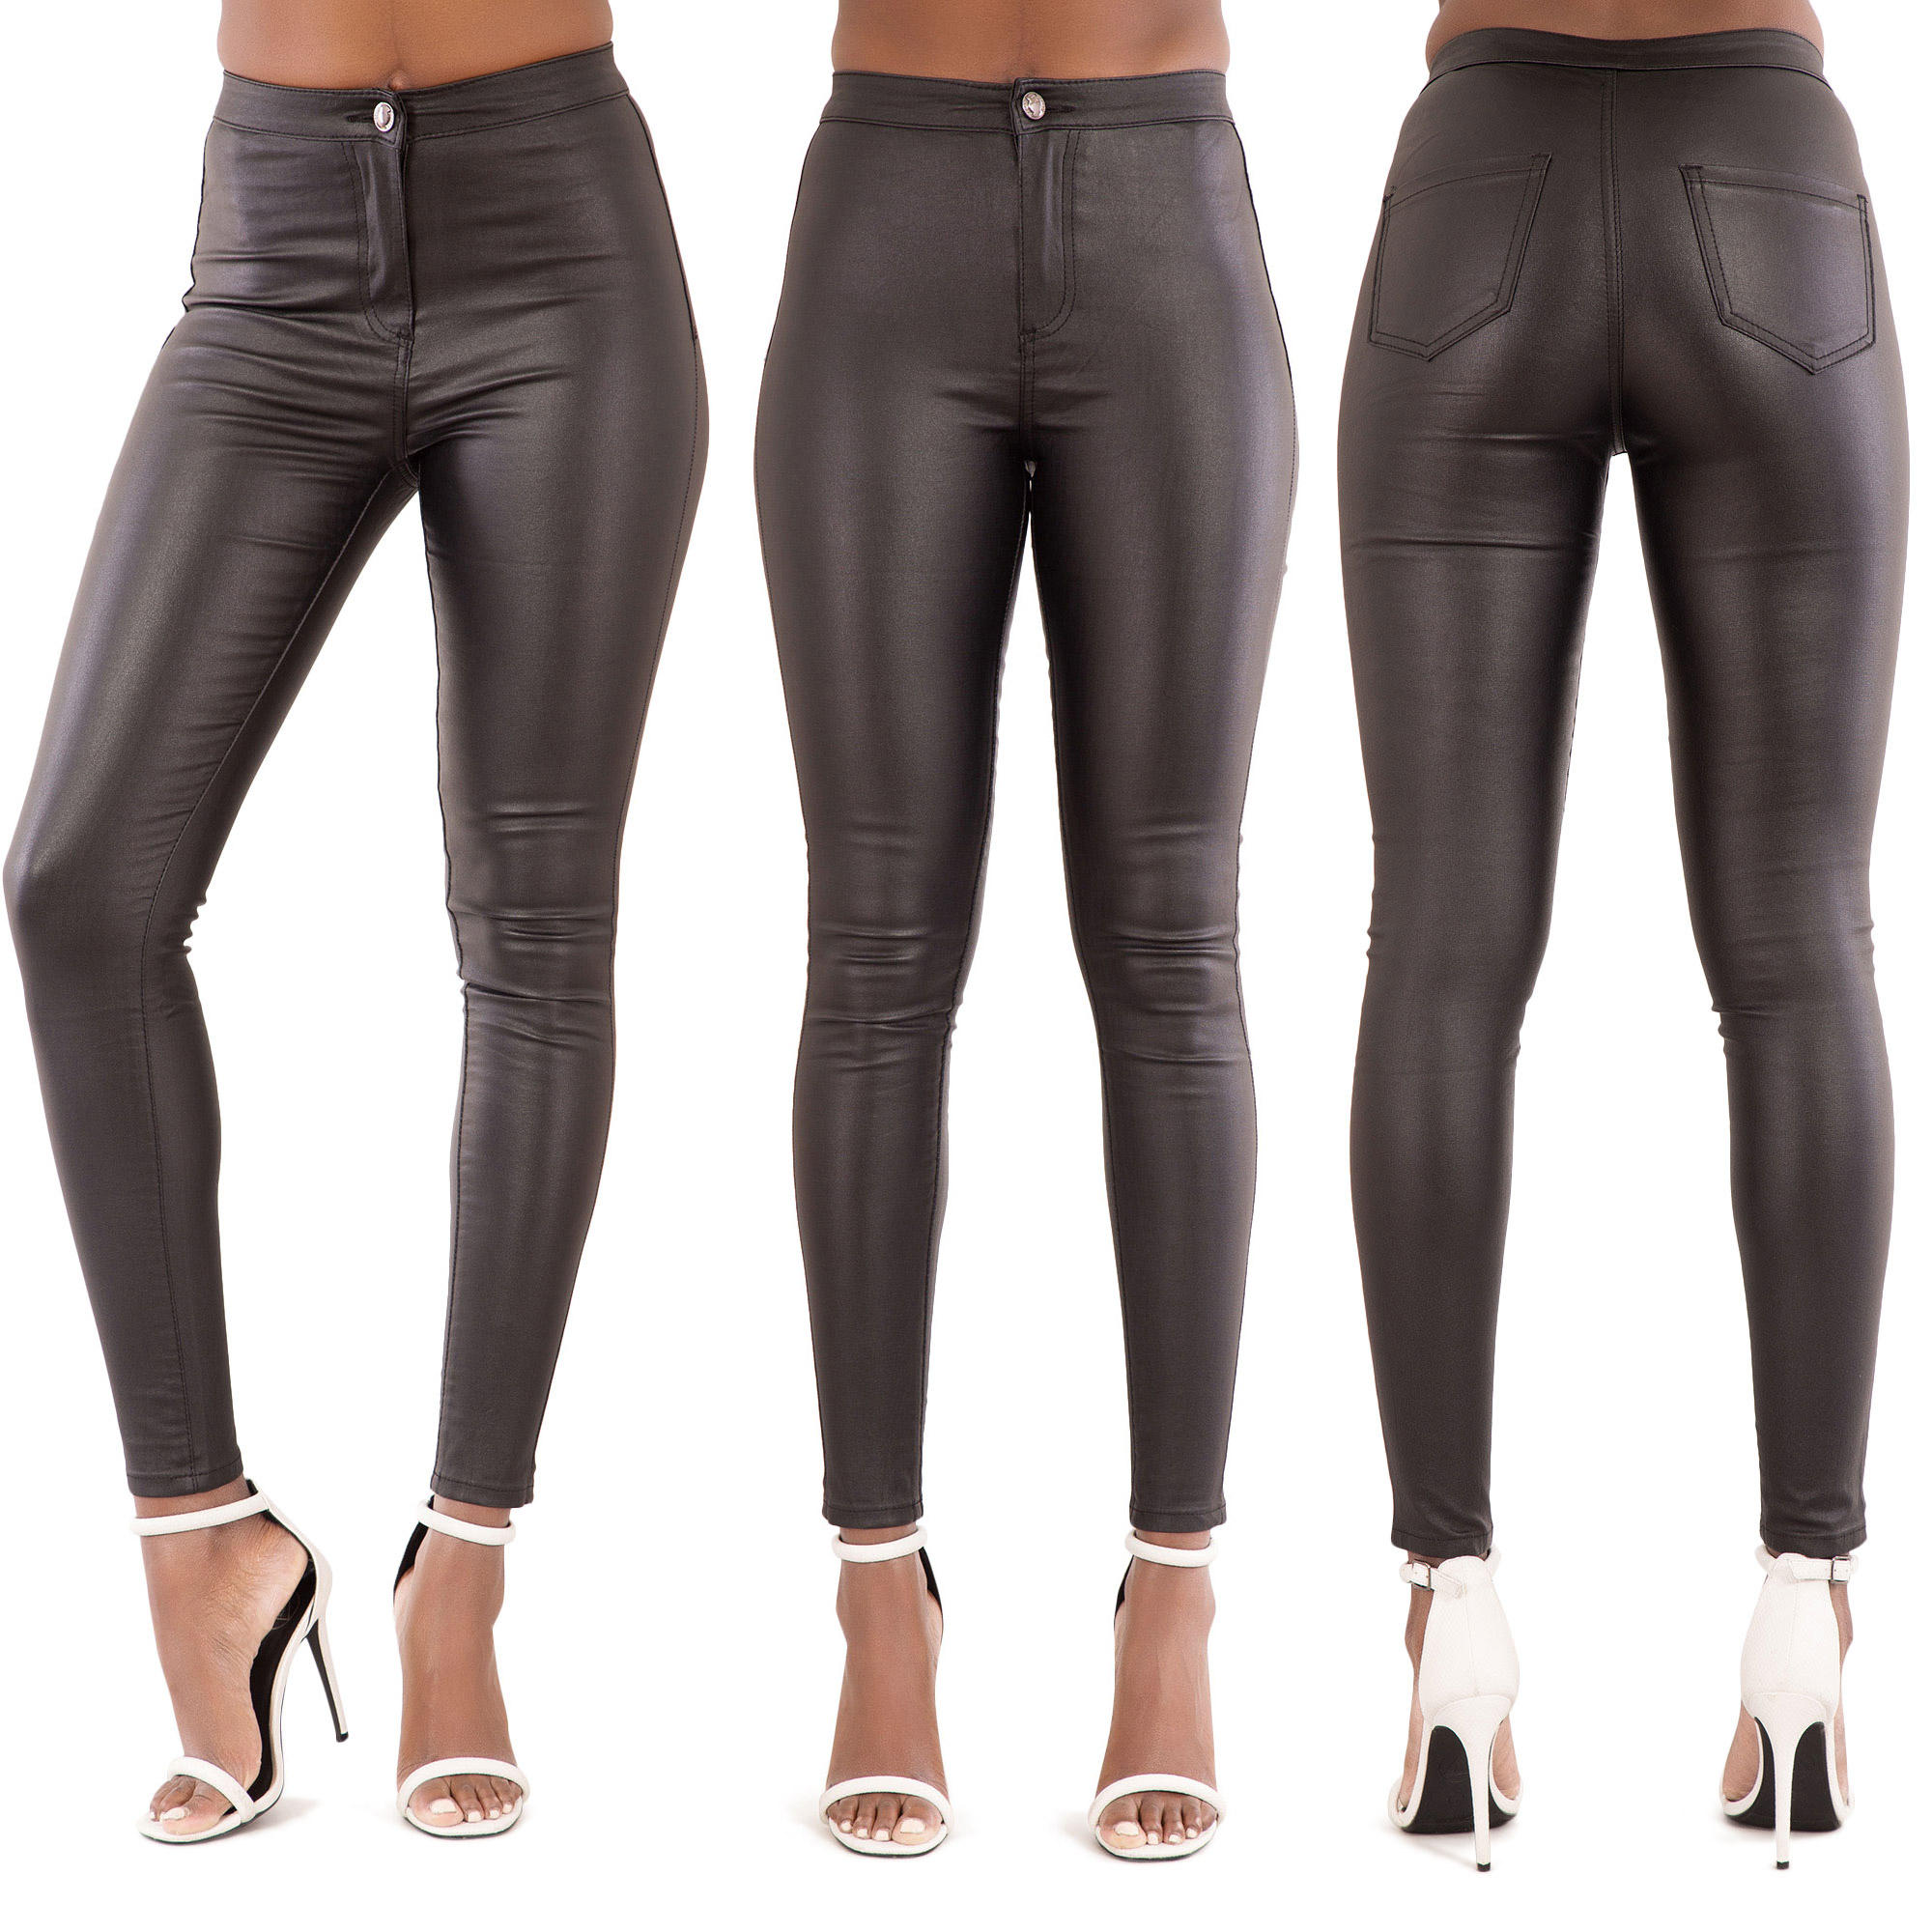 5543efc060f4 NEW WOMENS LEATHER LOOK JEANS SEXY TROUSERS LADIES BLACK SLIM FIT SIZE 6-22